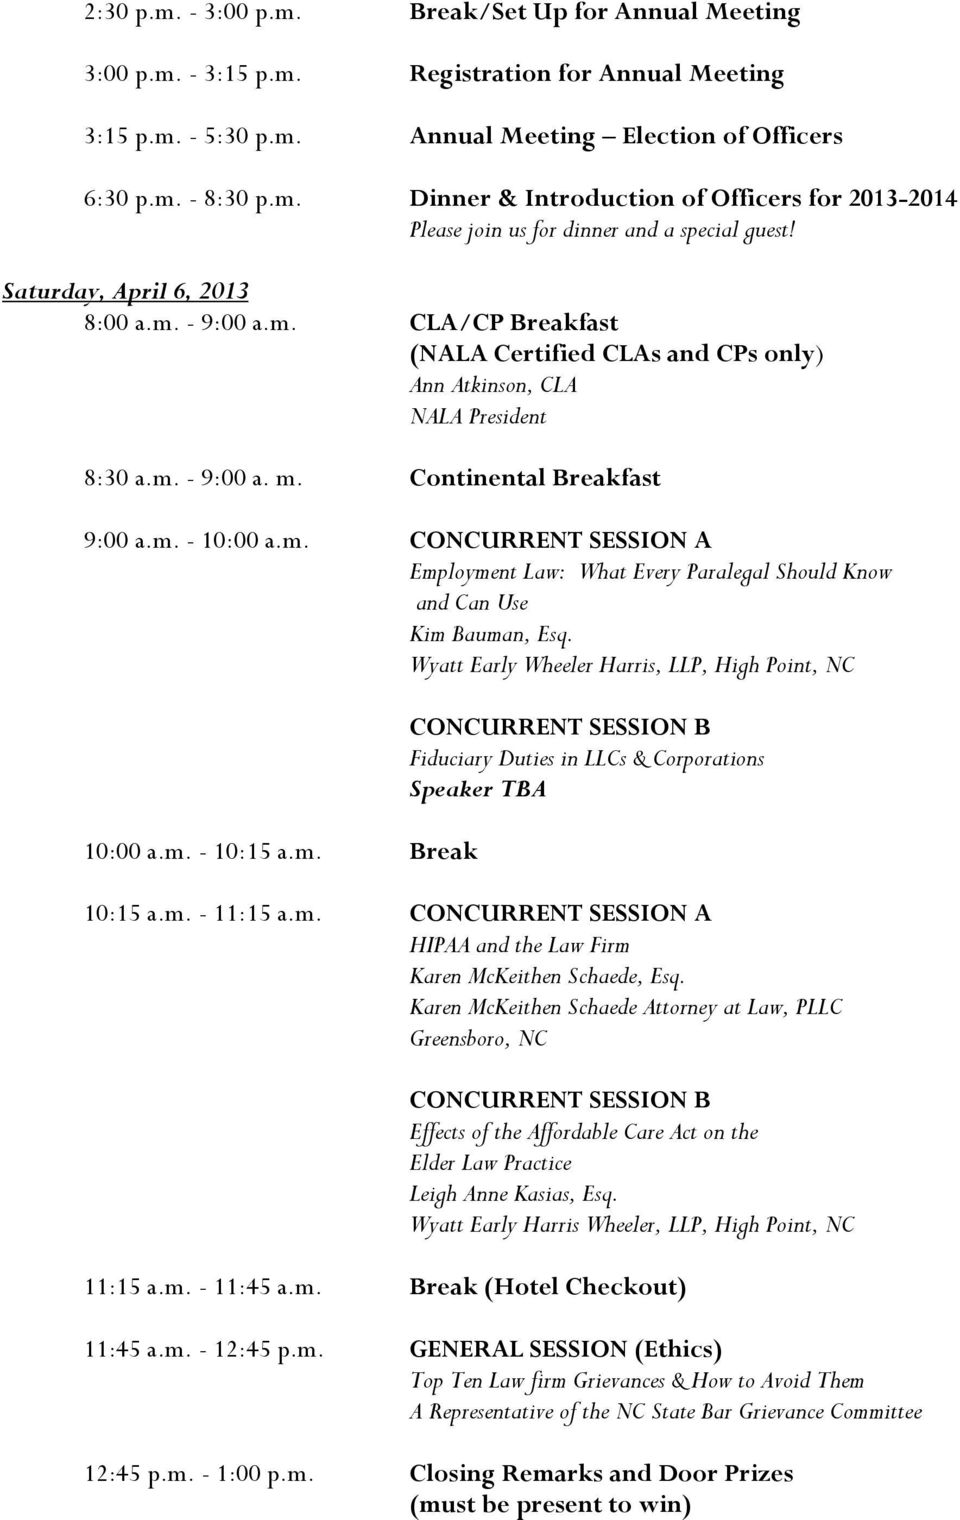 Wyatt Early Wheeler Harris, LLP, High Point, NC 10:00 a.m. - 10:15 a.m. Break Fiduciary Duties in LLCs & Corporations Speaker TBA 10:15 a.m. - 11:15 a.m. CONCURRENT SESSION A HIPAA and the Law Firm Karen McKeithen Schaede, Esq.